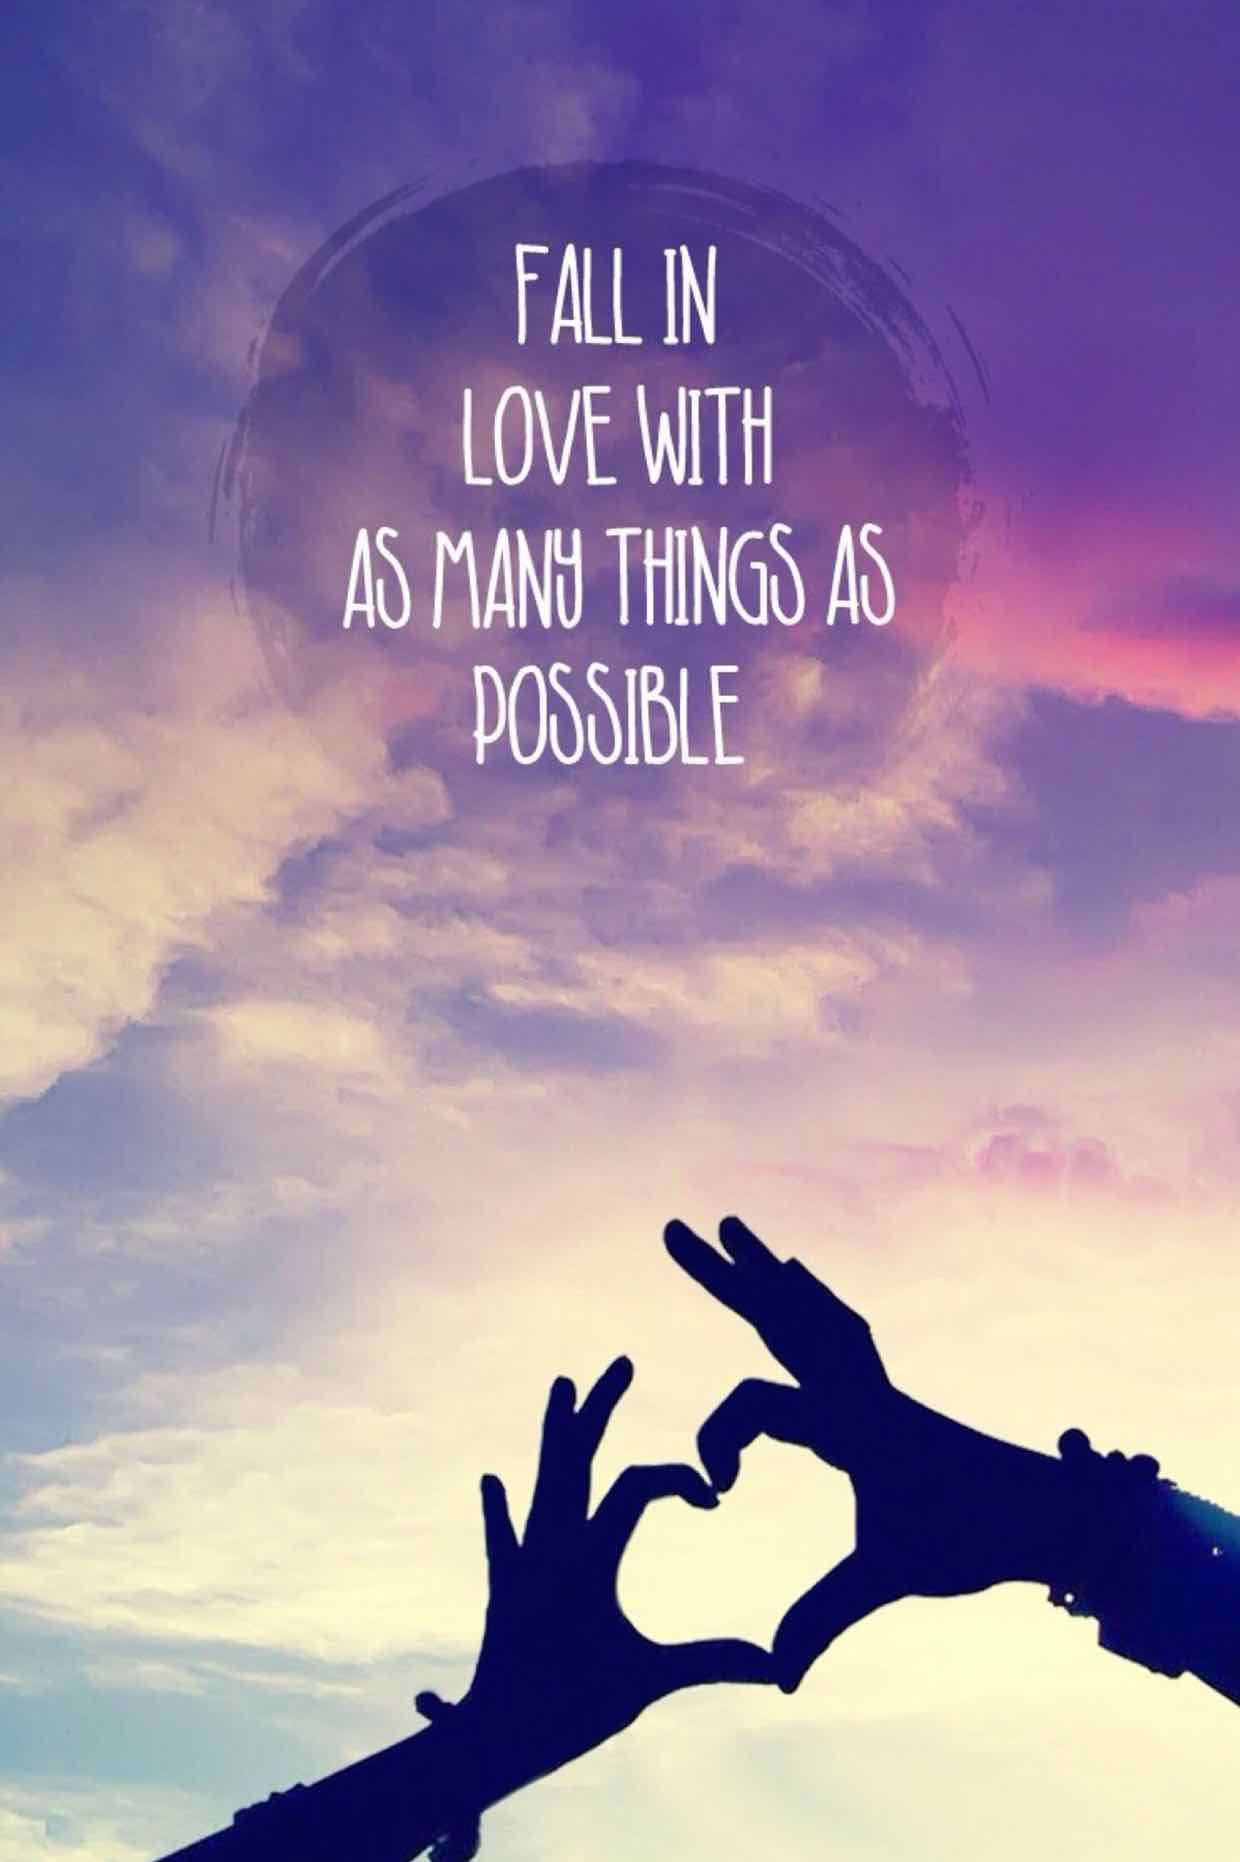 Quotes Love Quotes Wallpaper Iphone Wallpaper Quotes Love Romantic Love Quotes